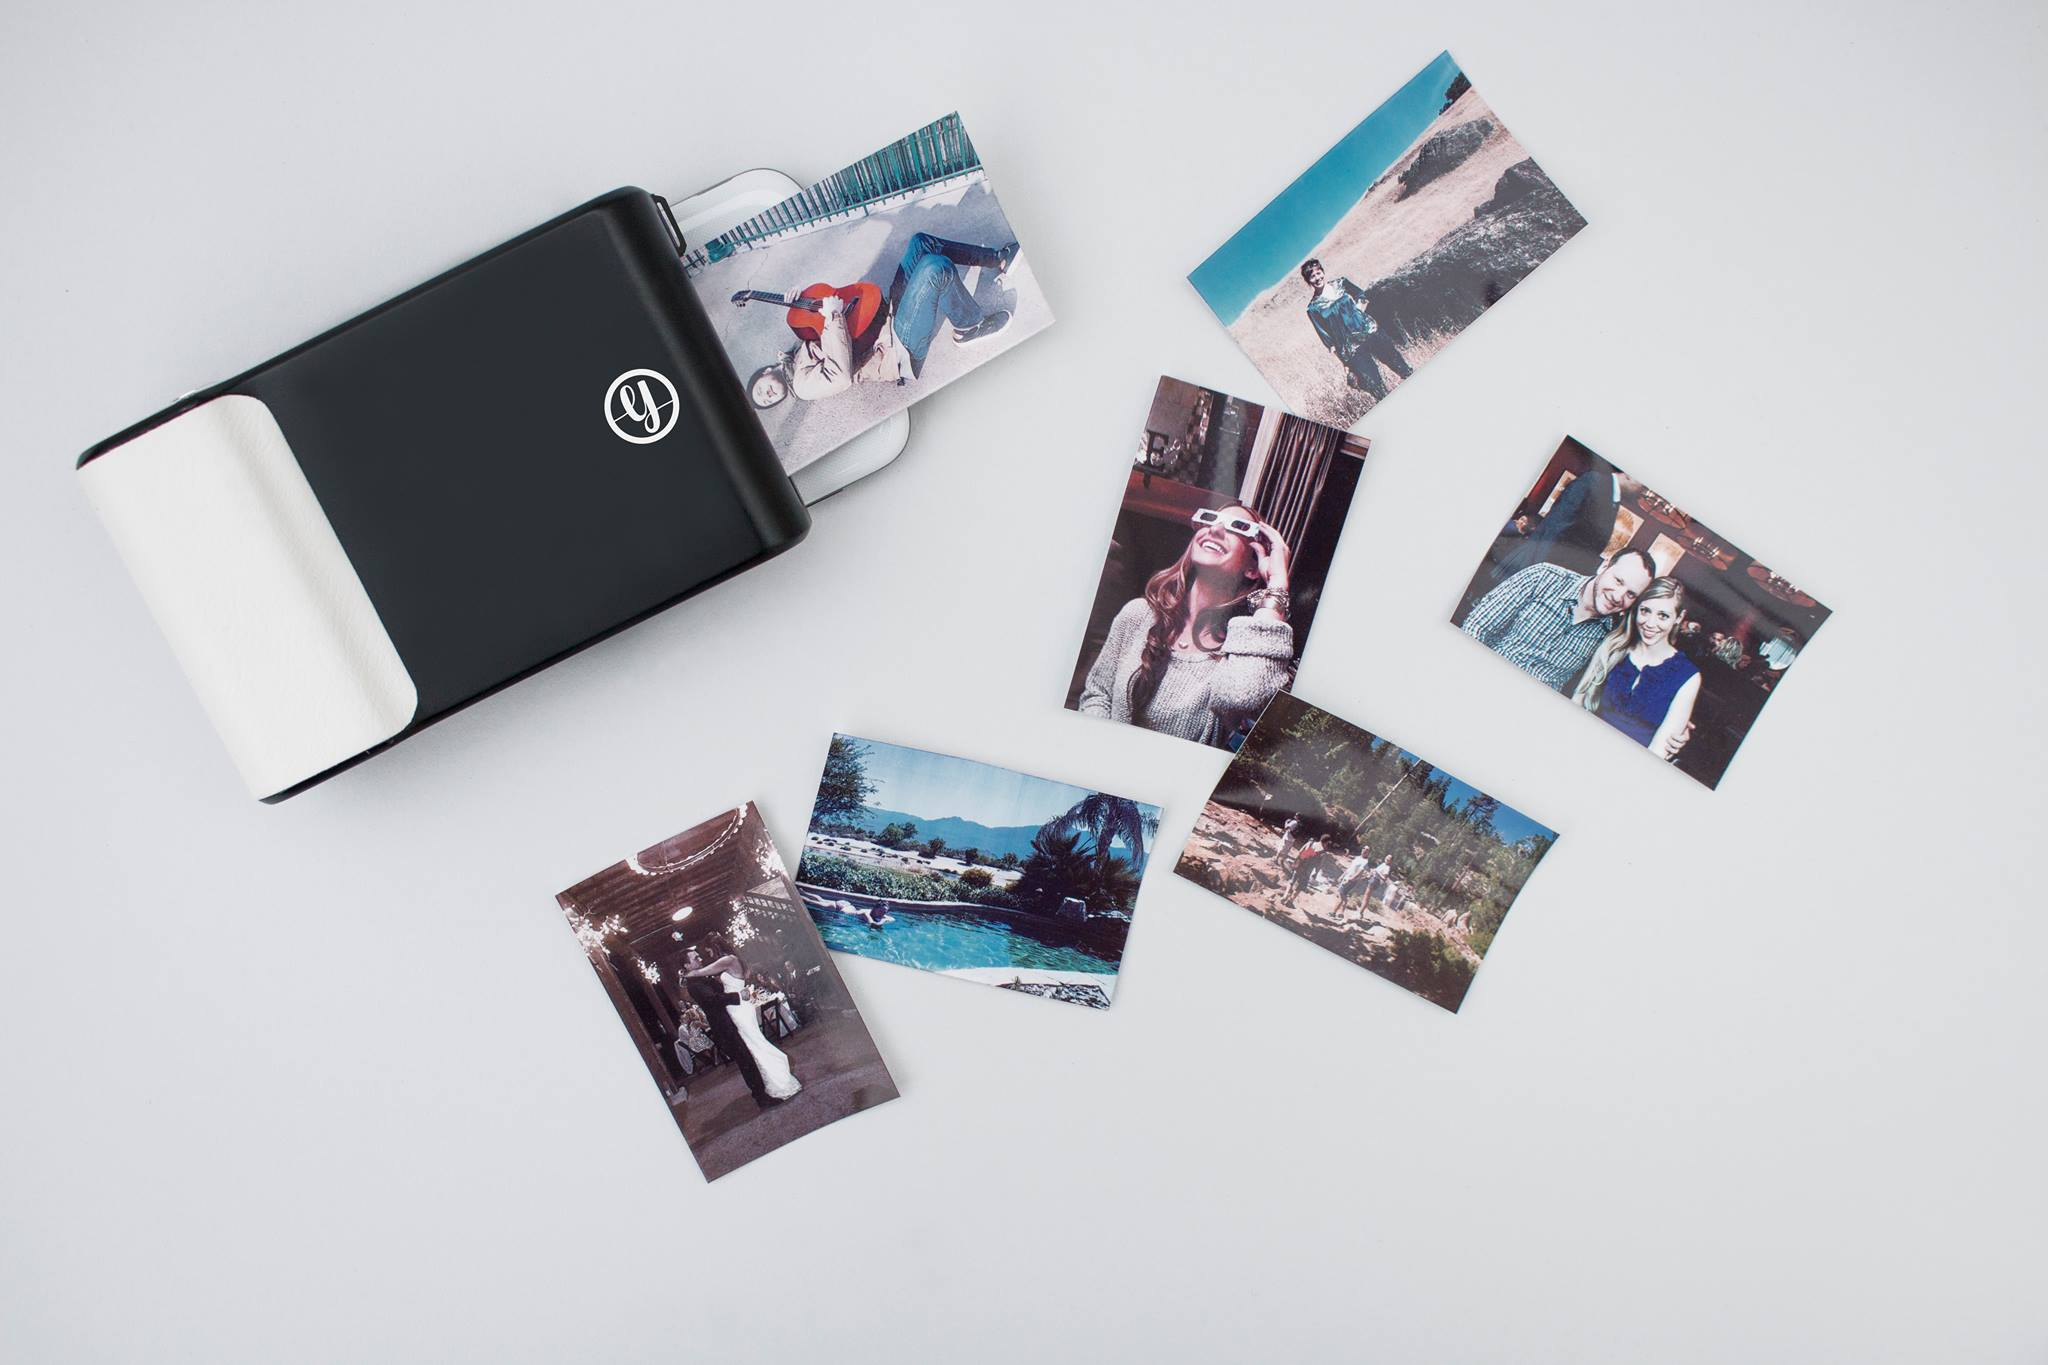 A Smartphone Case That Turns Phones Into Instant Cameras Raised Another $7 Million